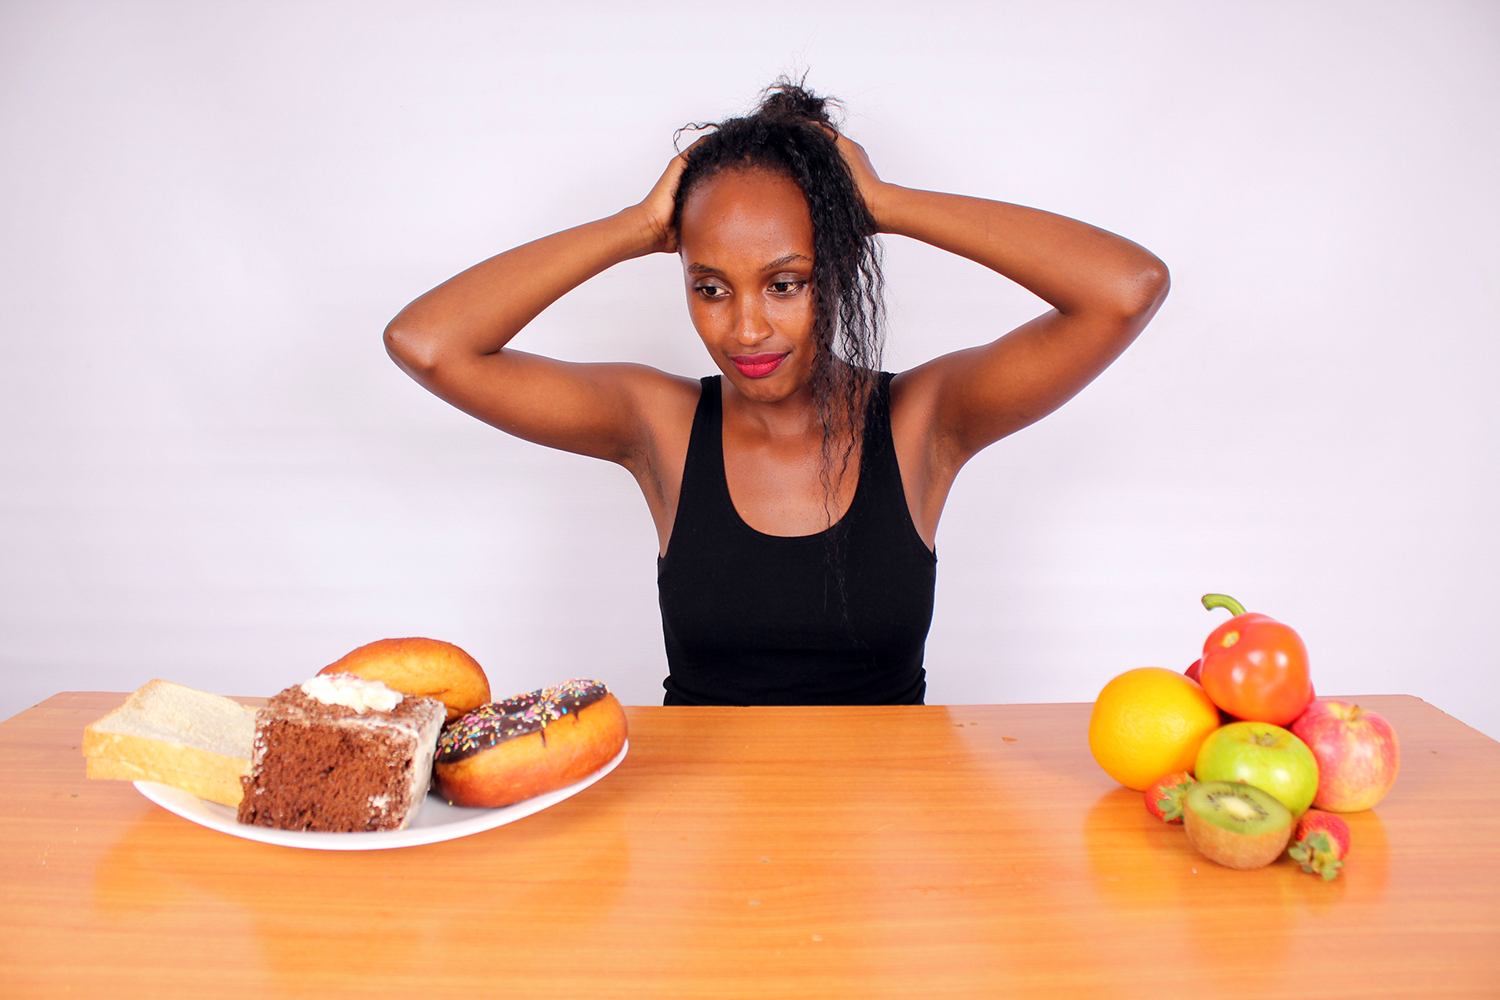 Healthy Woman Confused With Unhealthy Foods And Healthy